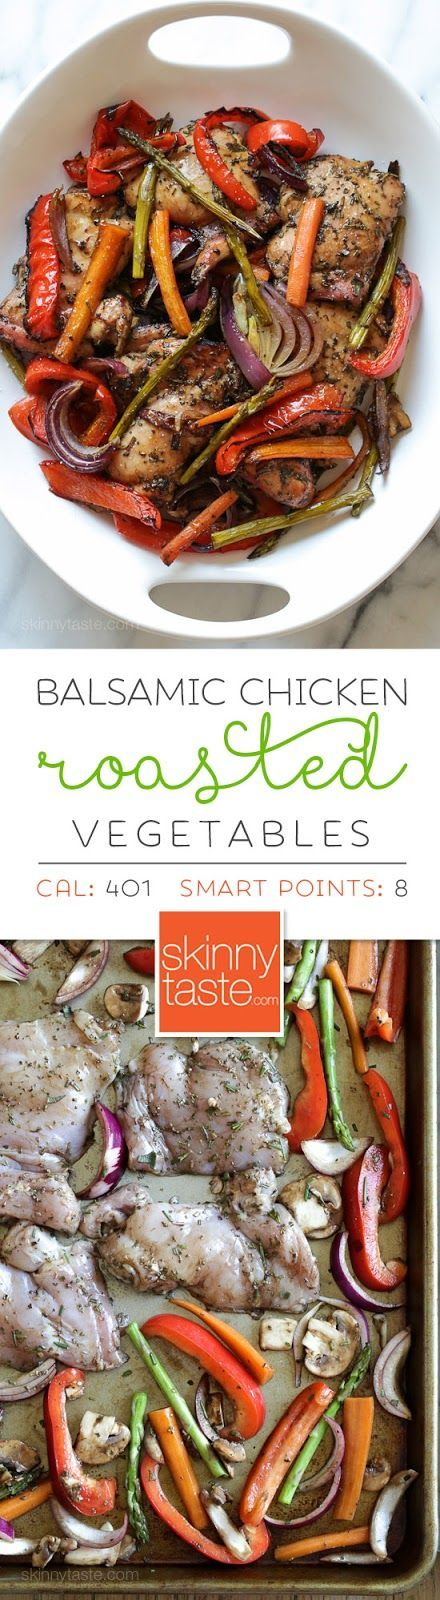 Balsamic Chicken with Roasted Vegetables – an easy, flavorful and low-carb sheet pan dinner! Smart Points: 8 Calories: 401: